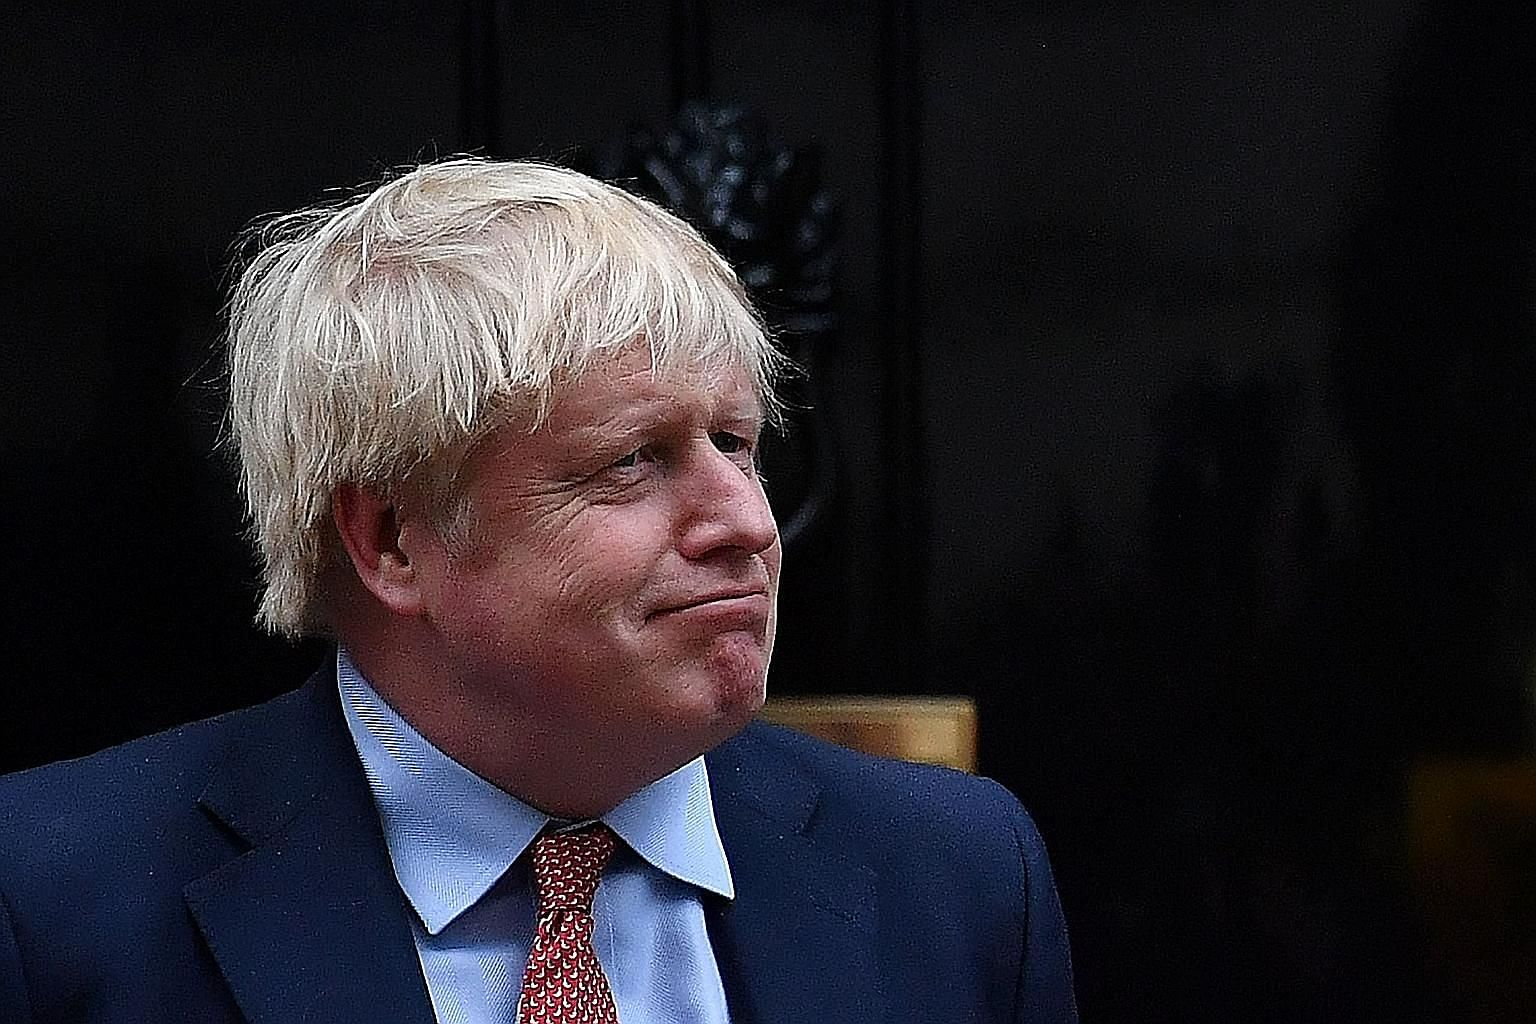 British Prime Minister Boris Johnson is poised to allow Huawei to develop 5G in Britain, despite US calls to ban the Chinese firm. PHOTO: AGENCE FRANCE-PRESSE